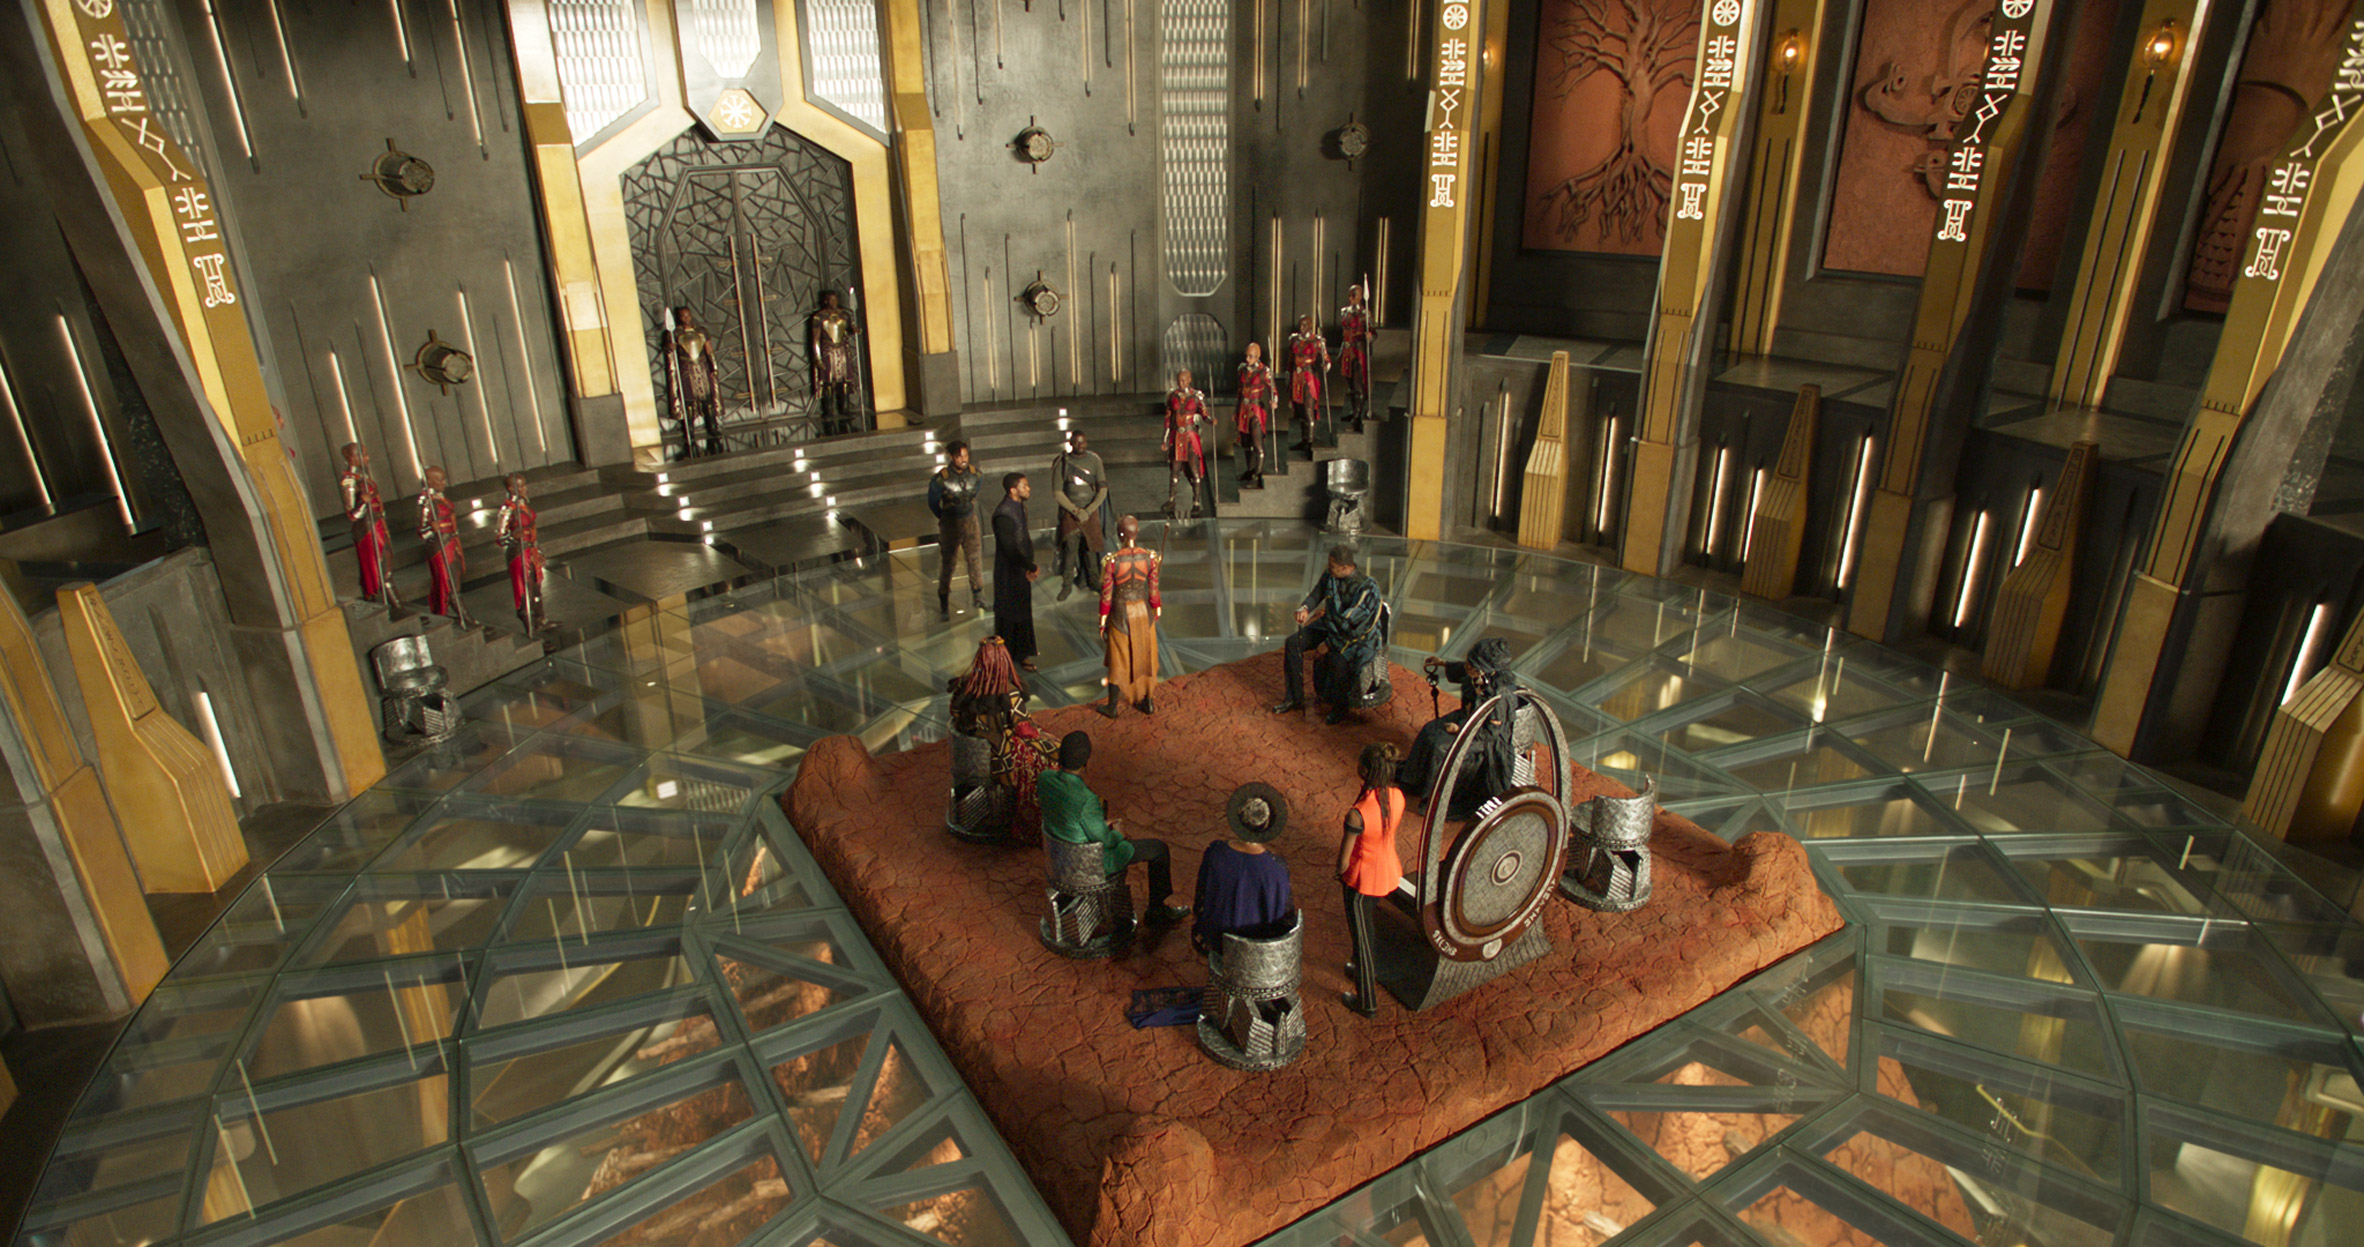 black-panther-marvel-hannah-beachler-set-design-feature-interview_dezeen_2364_col_17